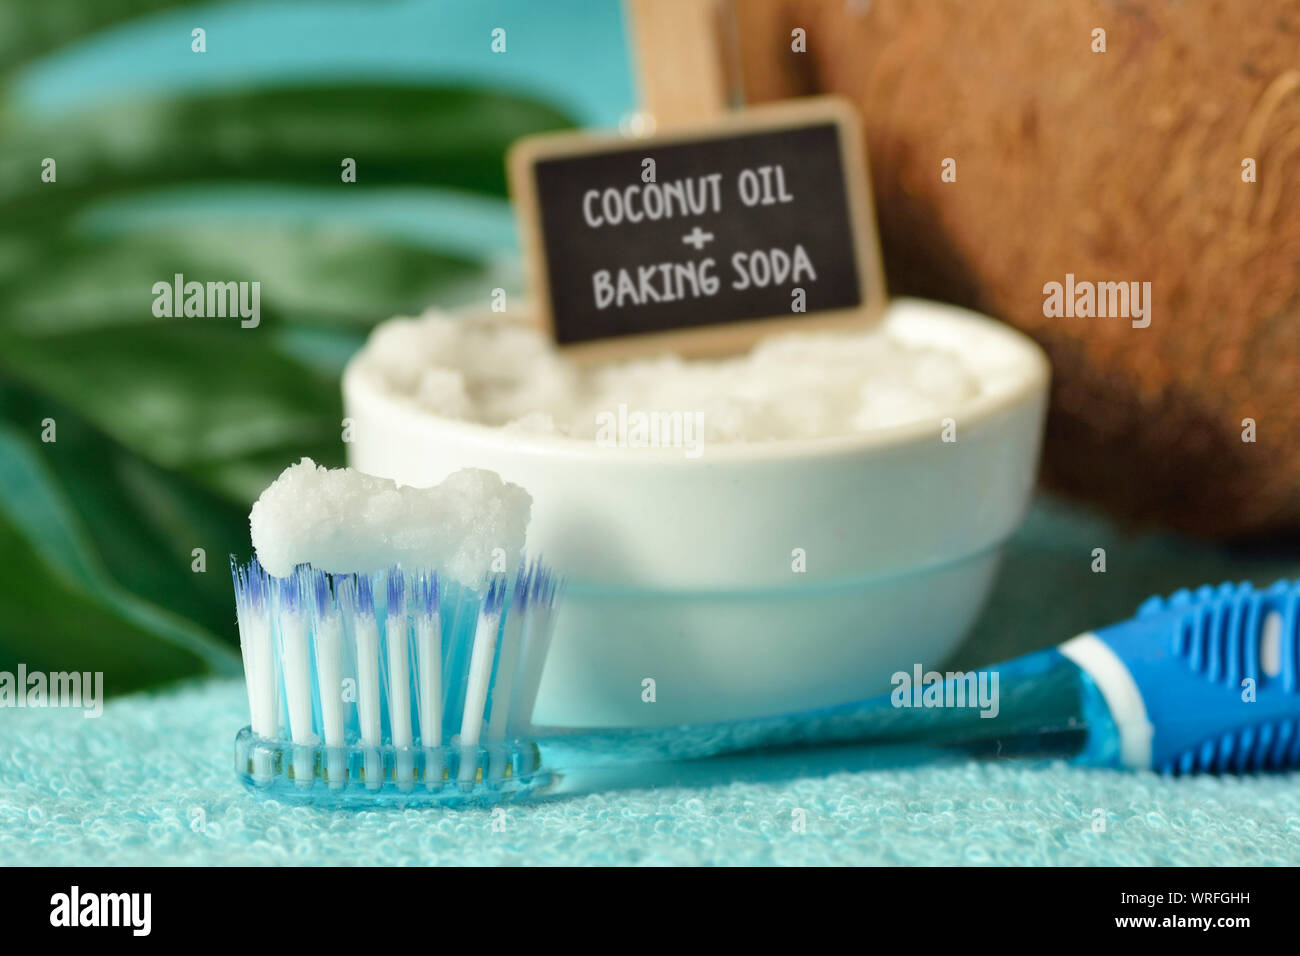 Coconut Oil And Baking Soda In A Bowl With A Toothbrush Homemade